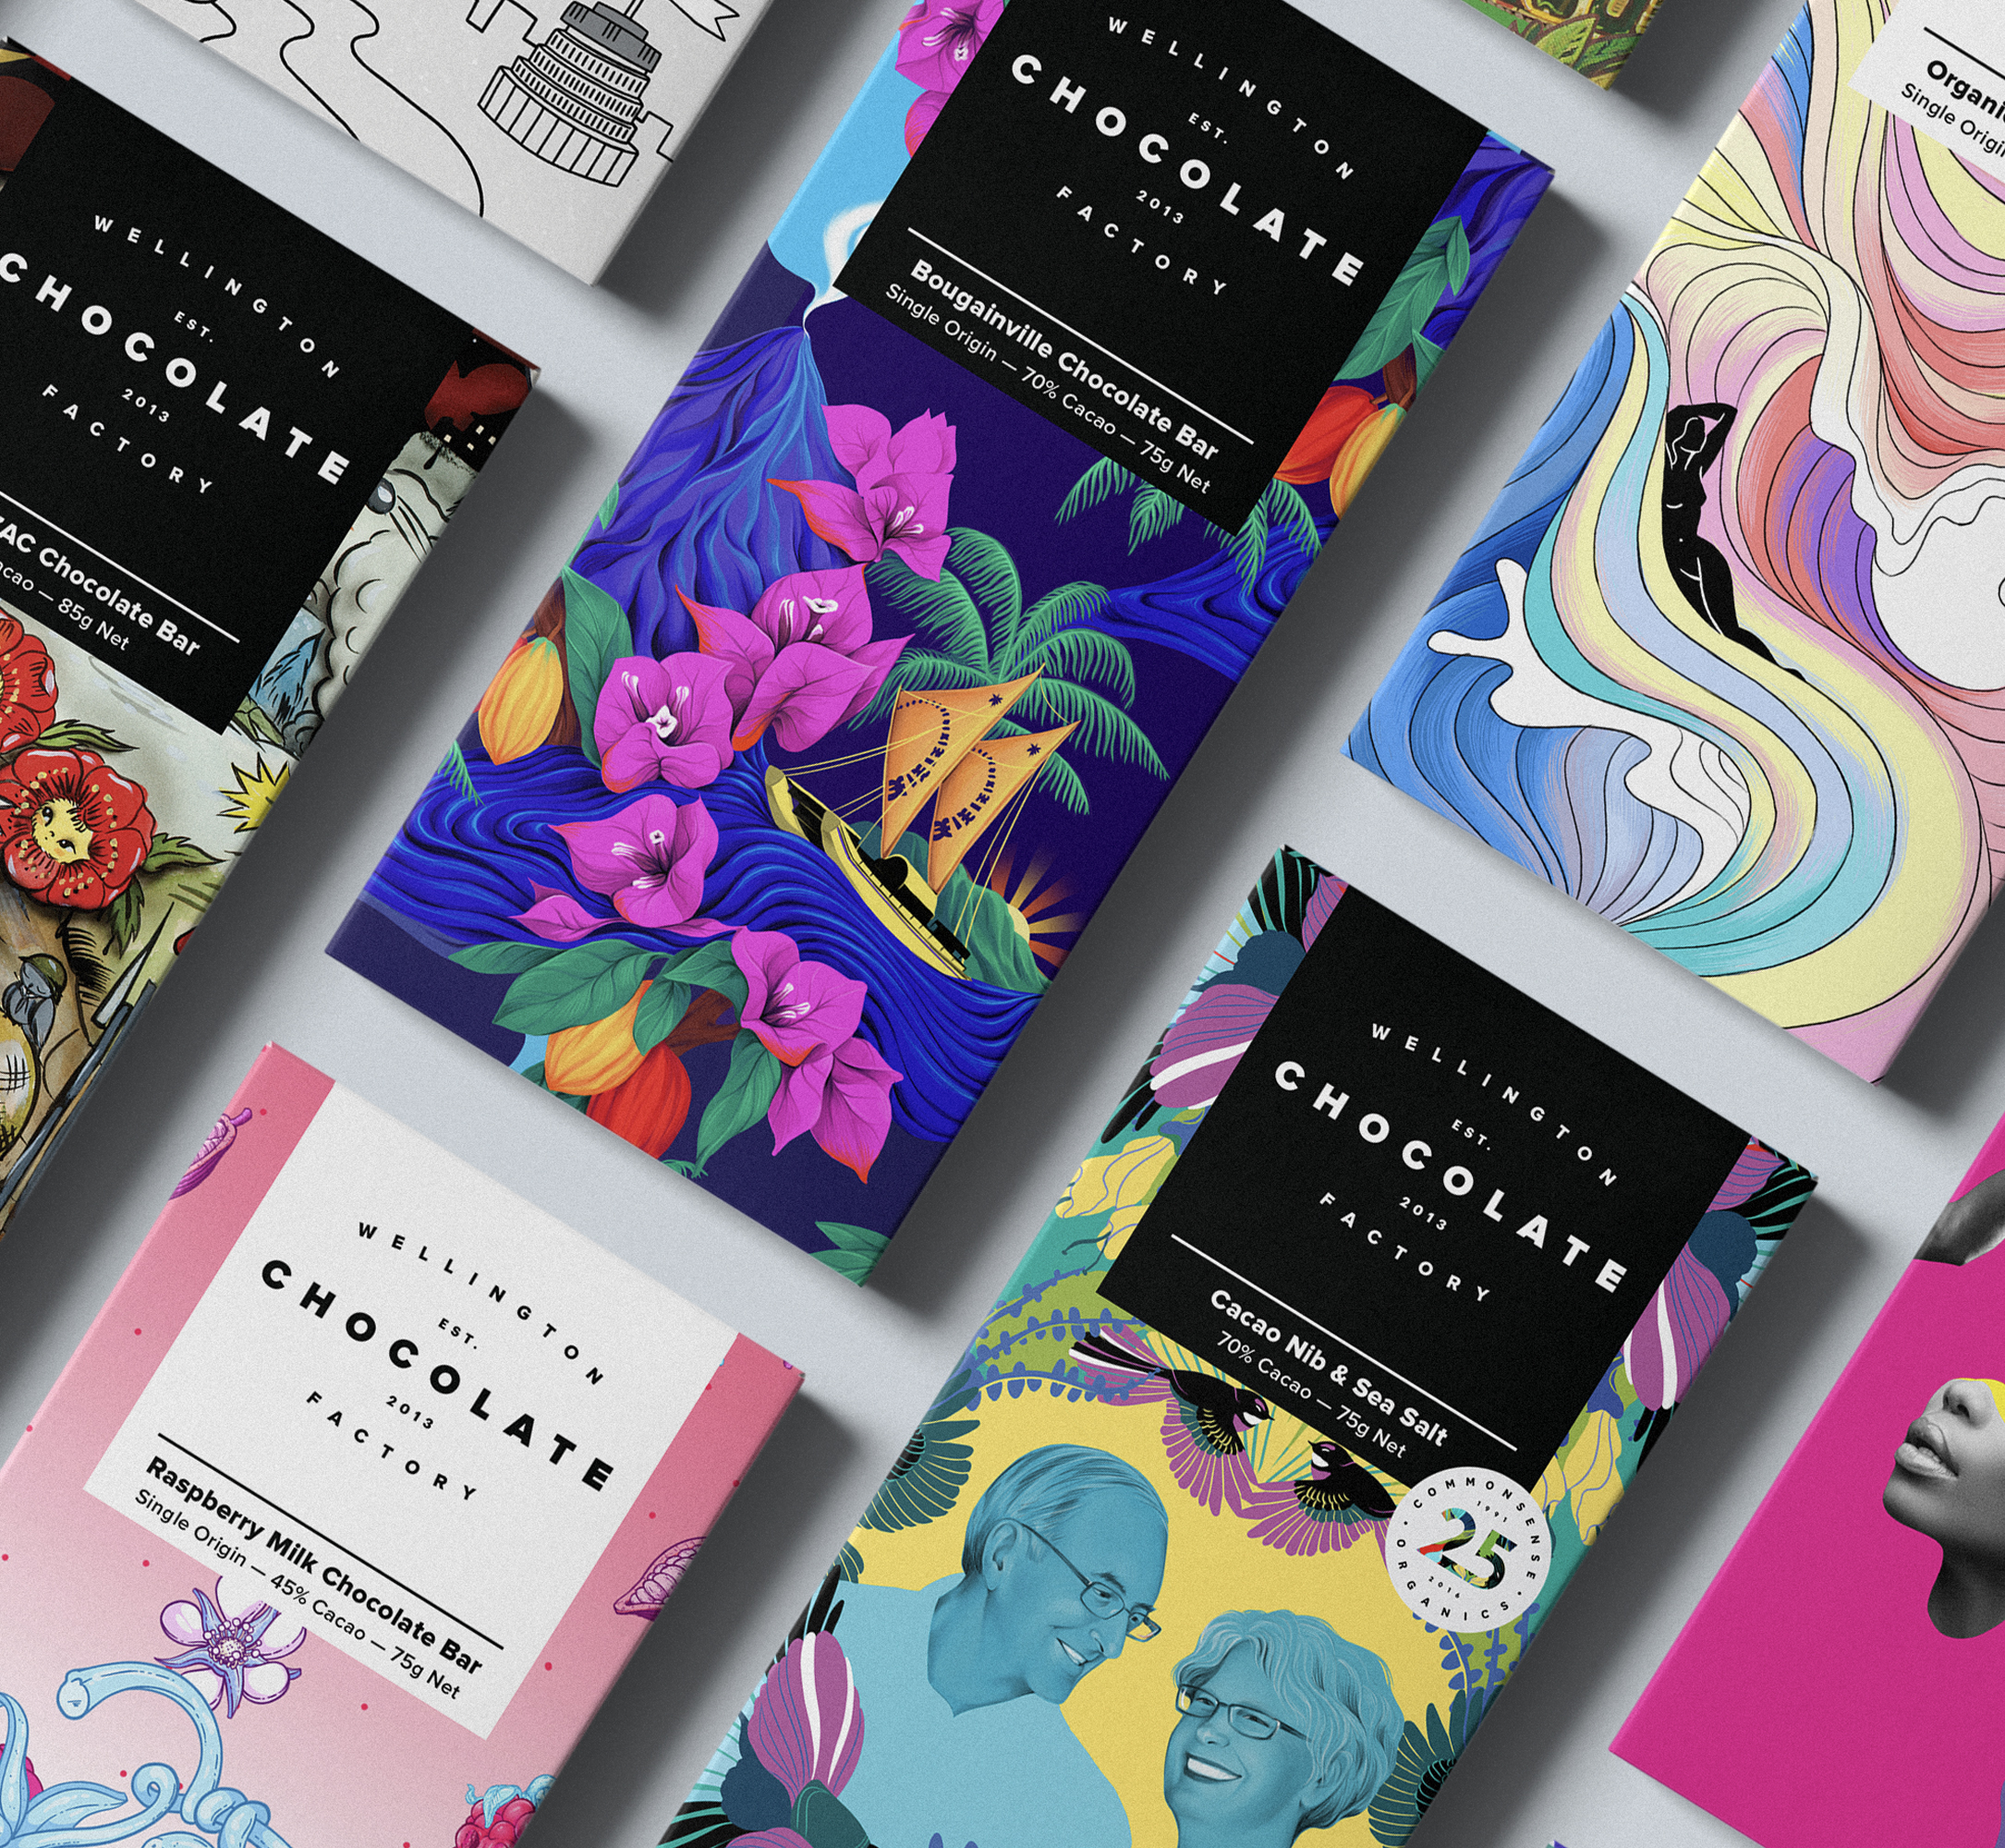 Inject - Inject is our branding agency, based right here in Wellington. They put together all of our packaging and guide us through our various creative endeavours, check them out via the link below.